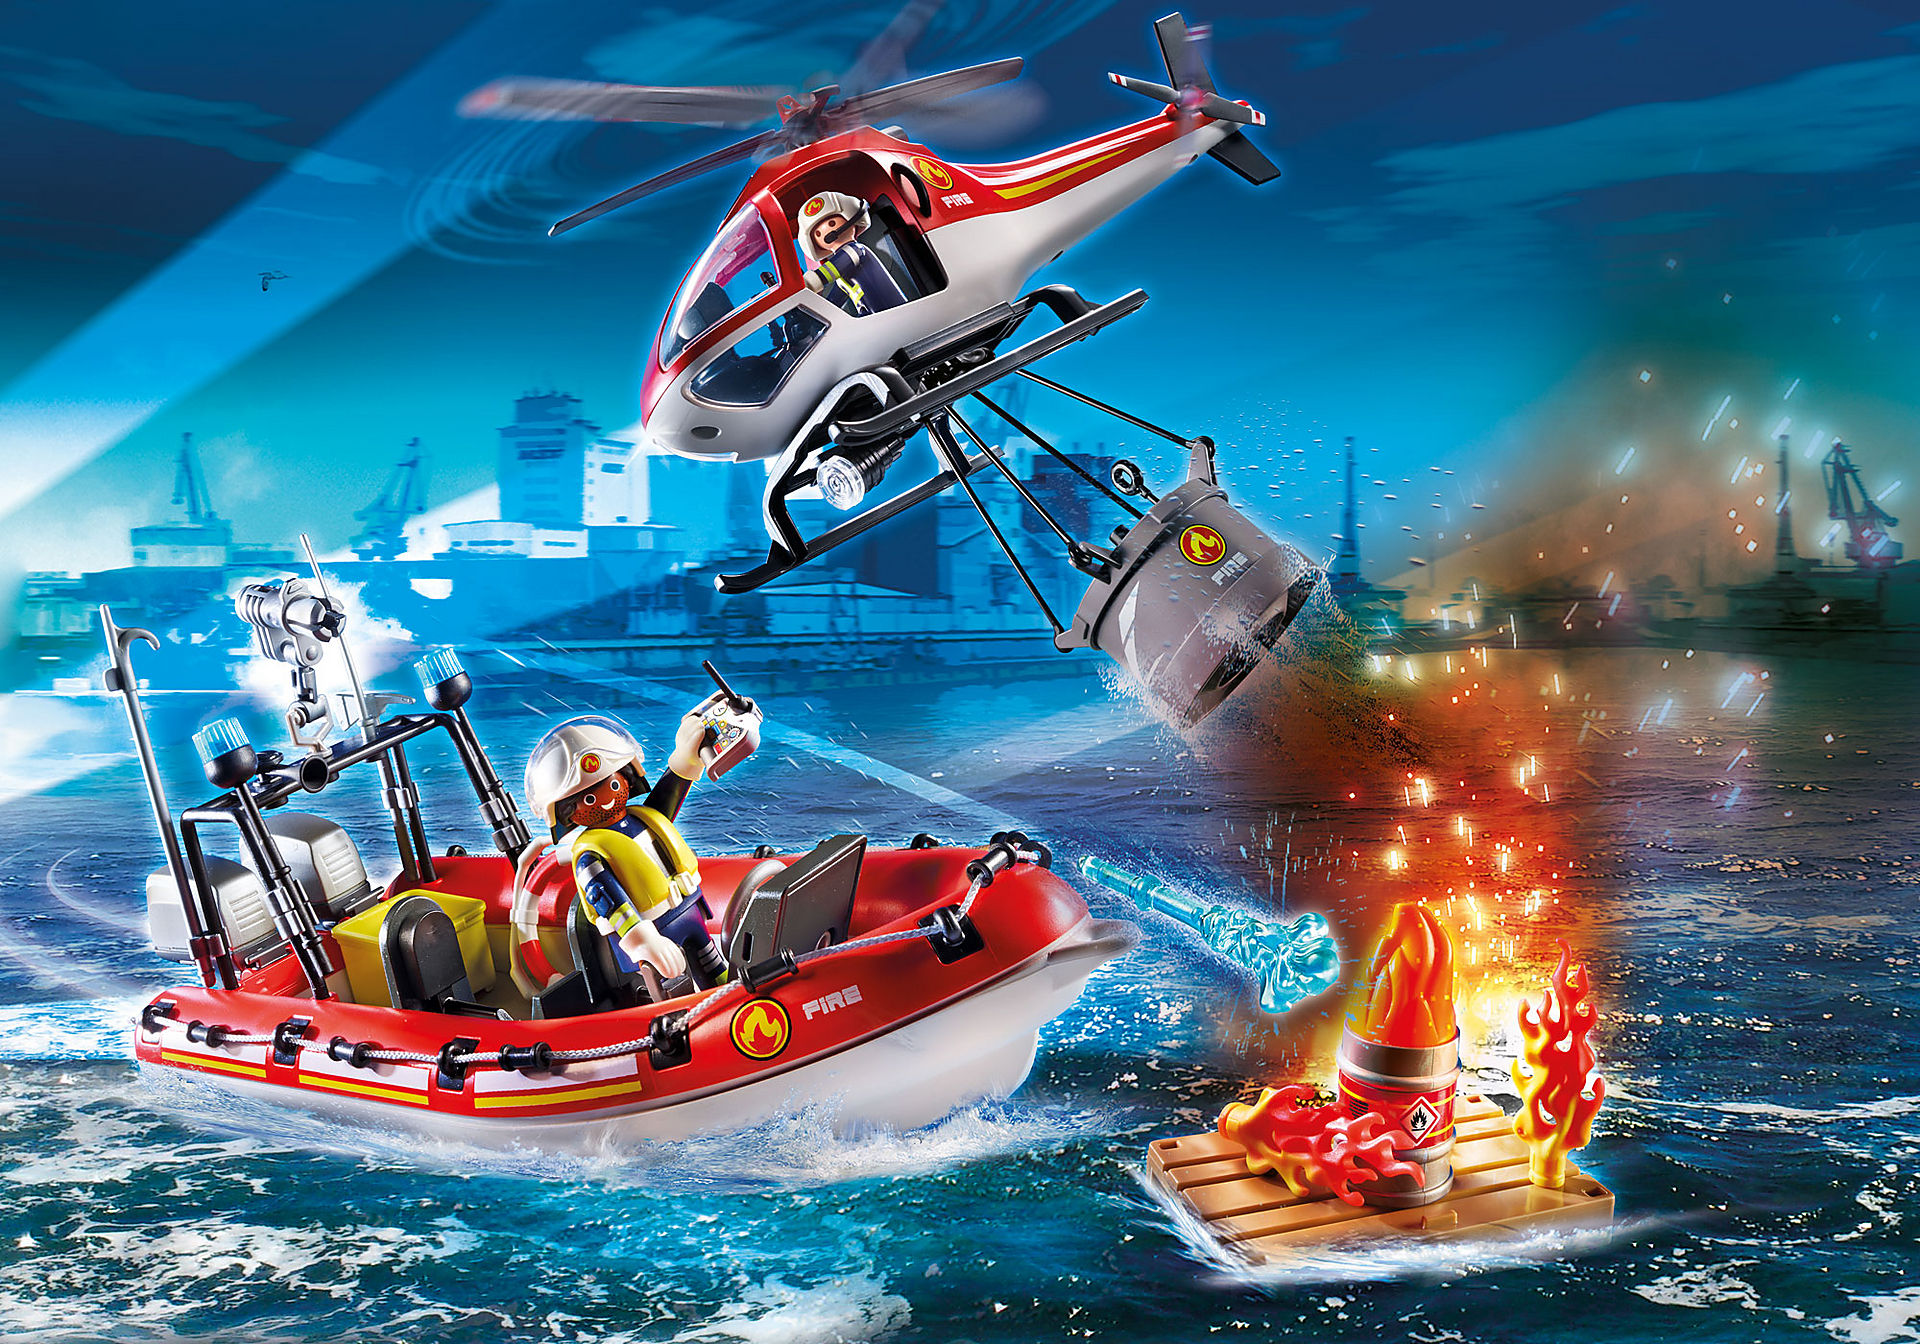 70335 Fire rescue helicopter and boat zoom image1